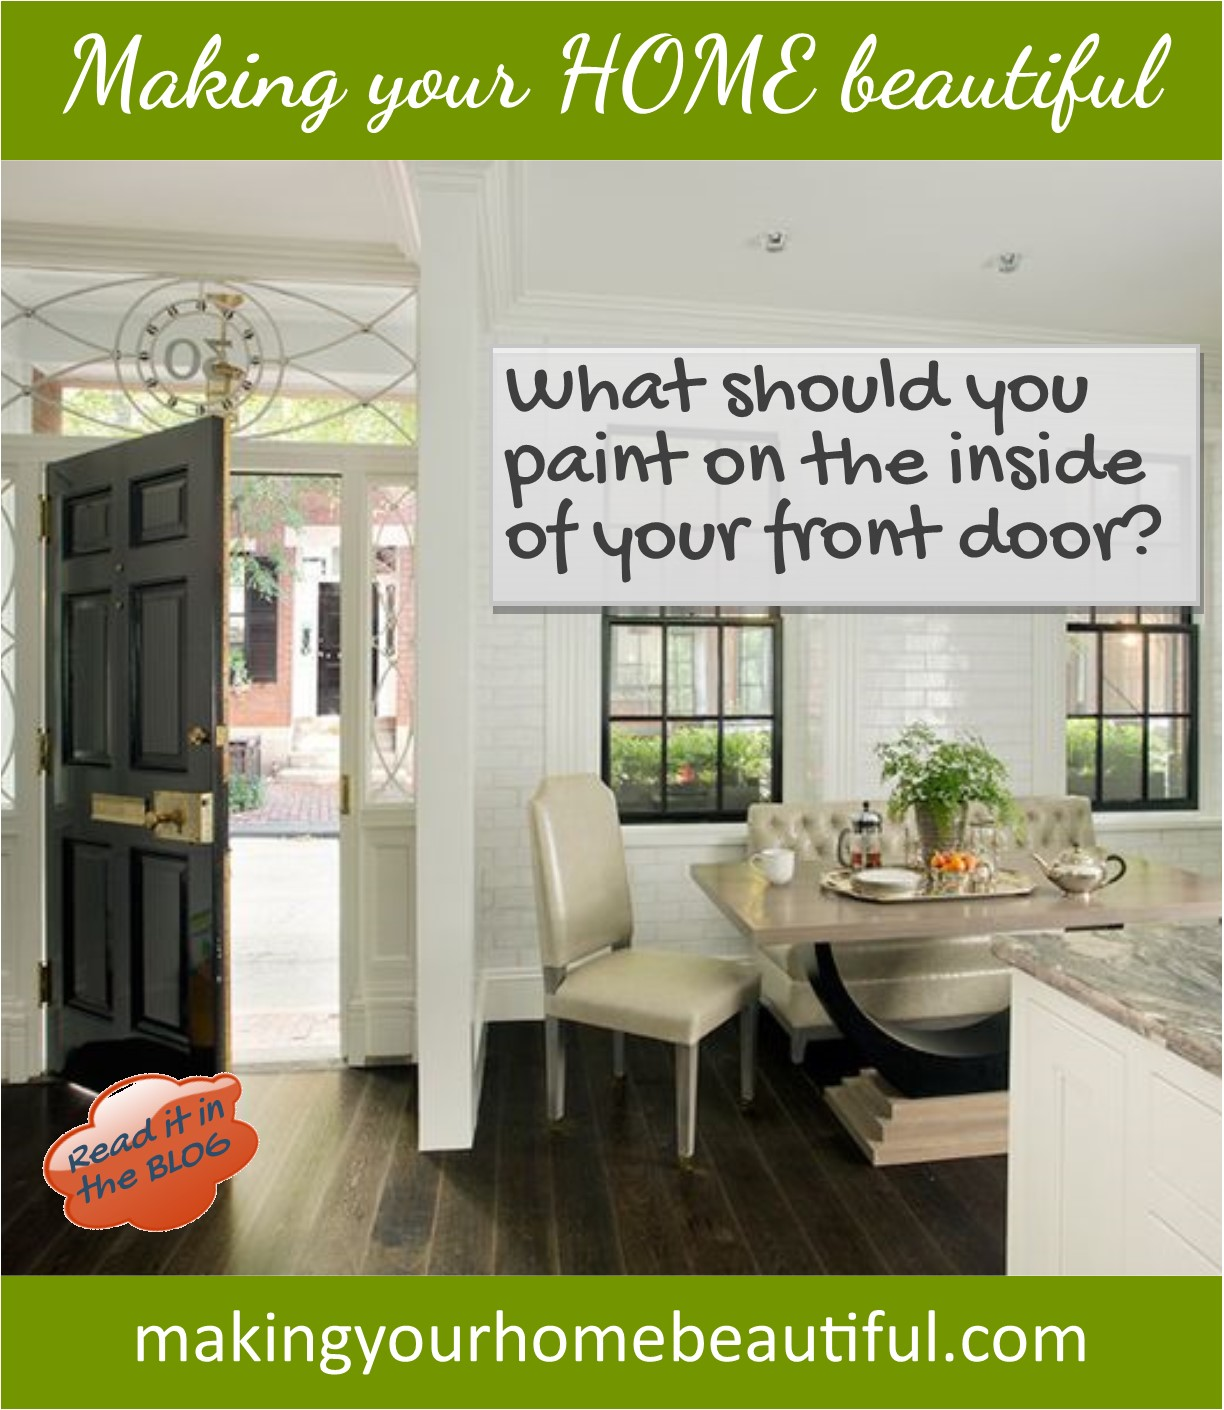 What should you paint on the inside of your front door?